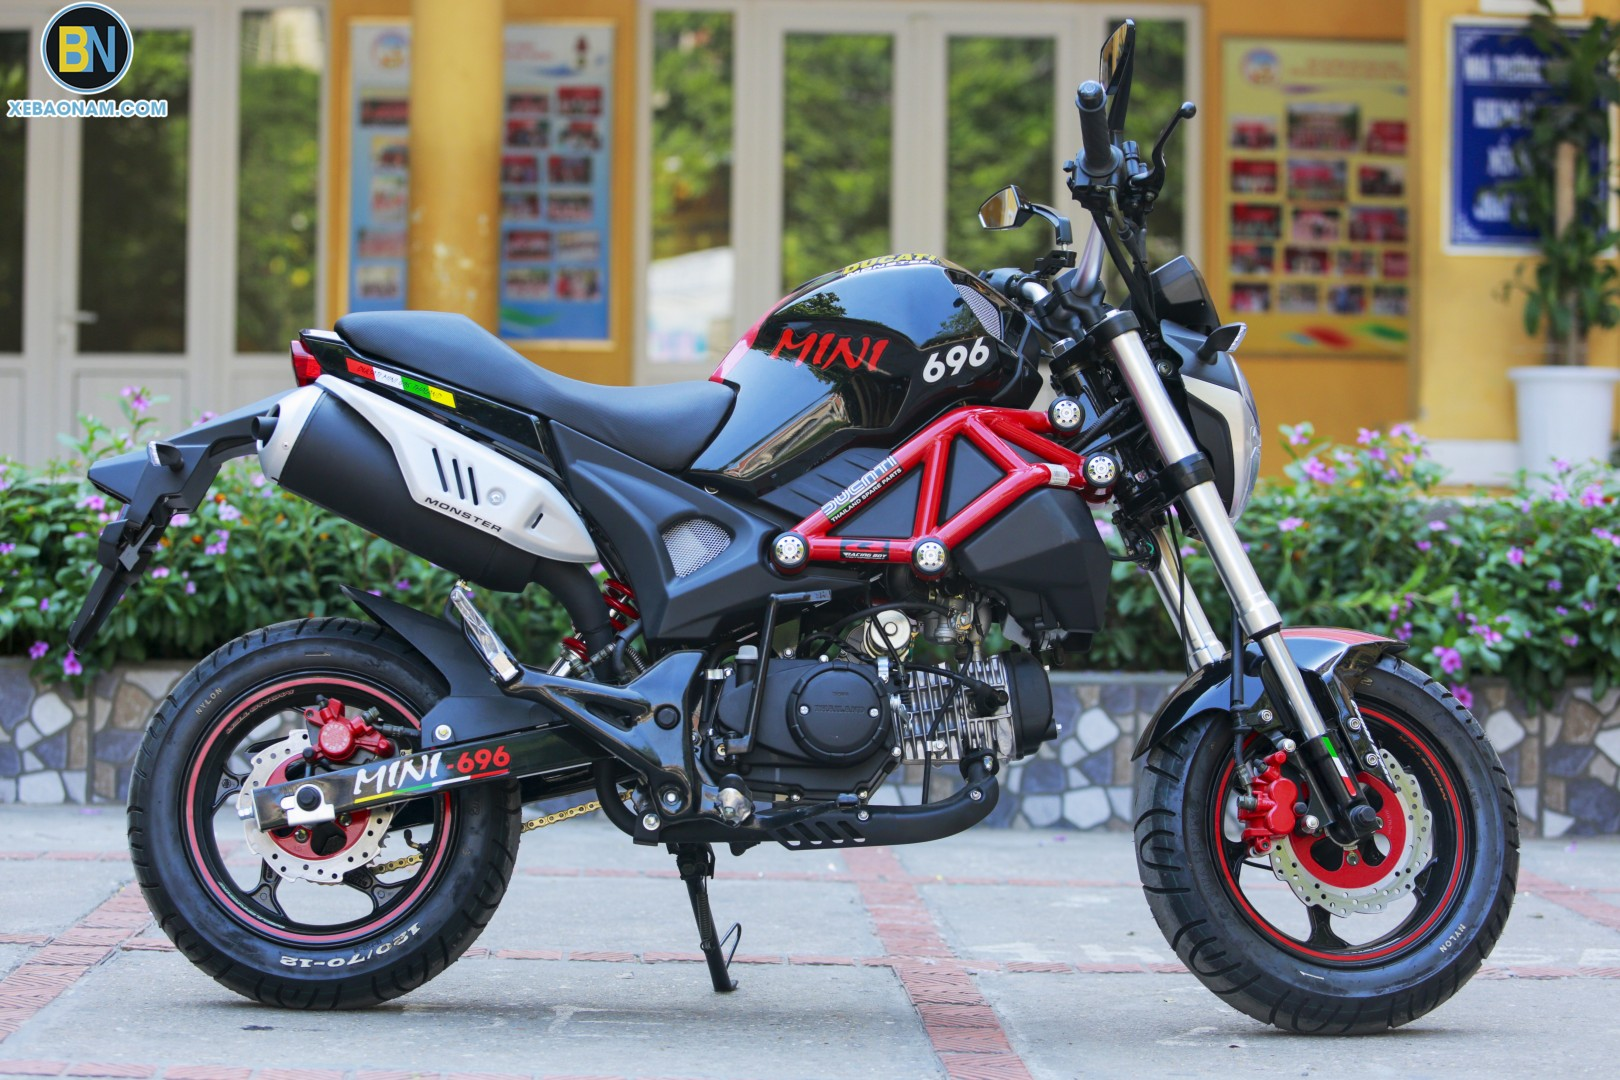 xe-may-ducati-mini-monster-110-xebaonam(27)